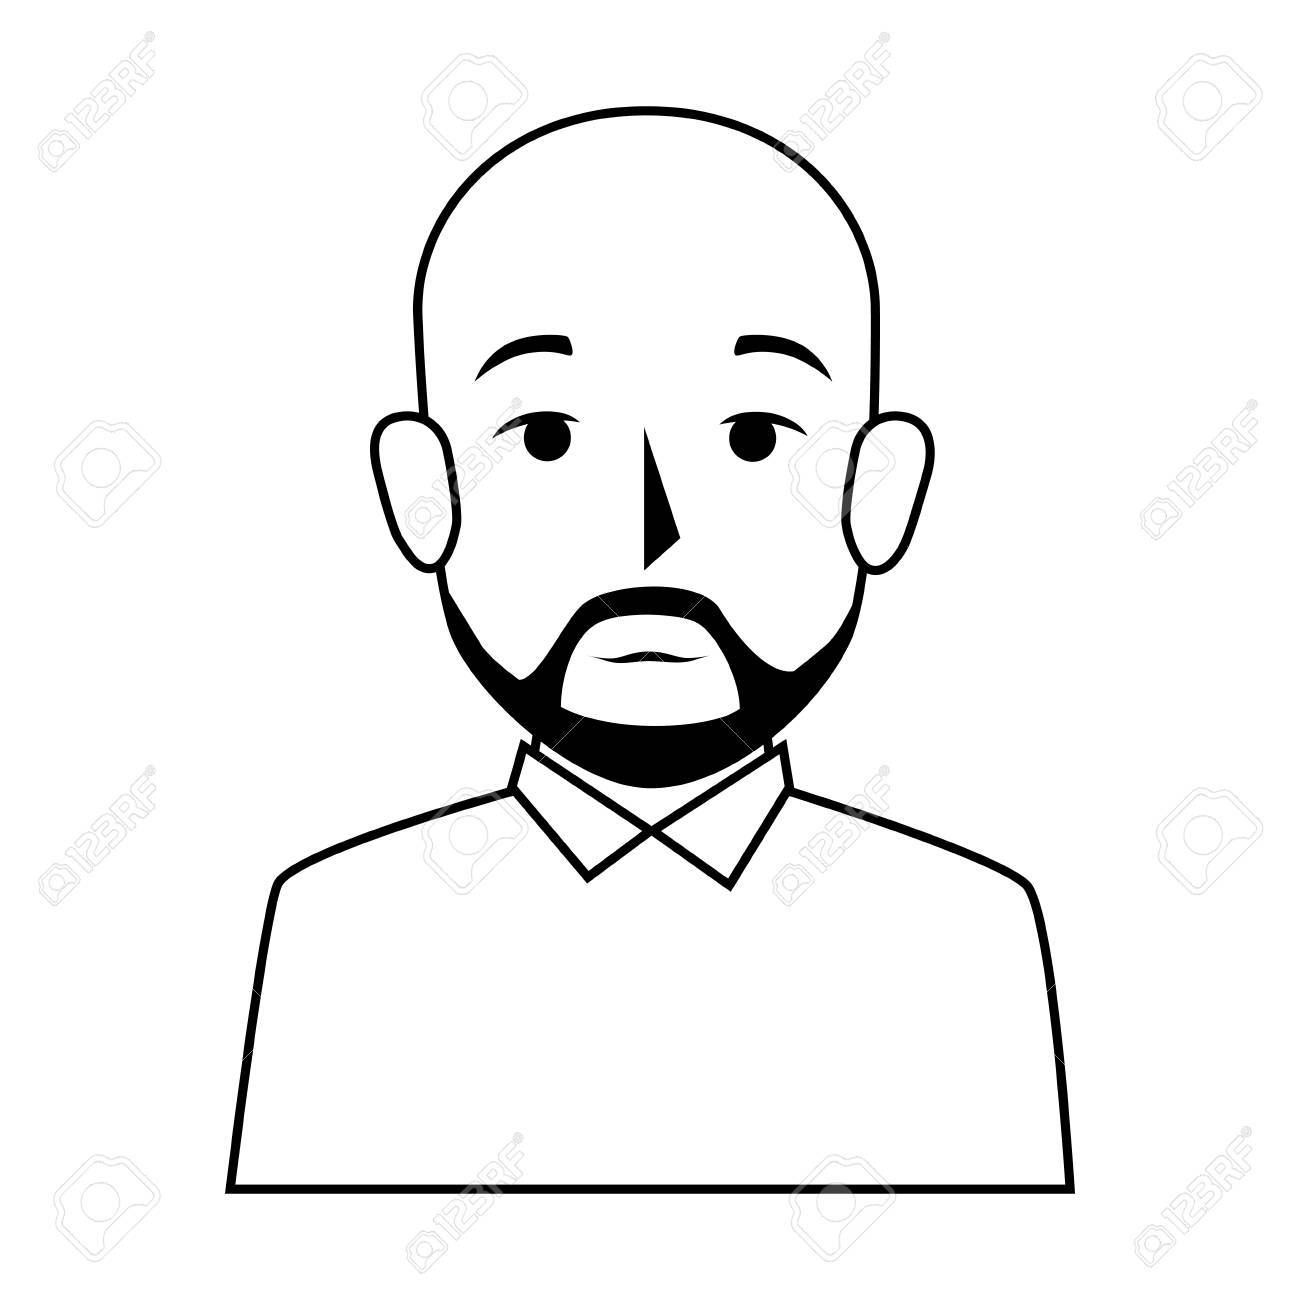 Bearded Man Silhouette